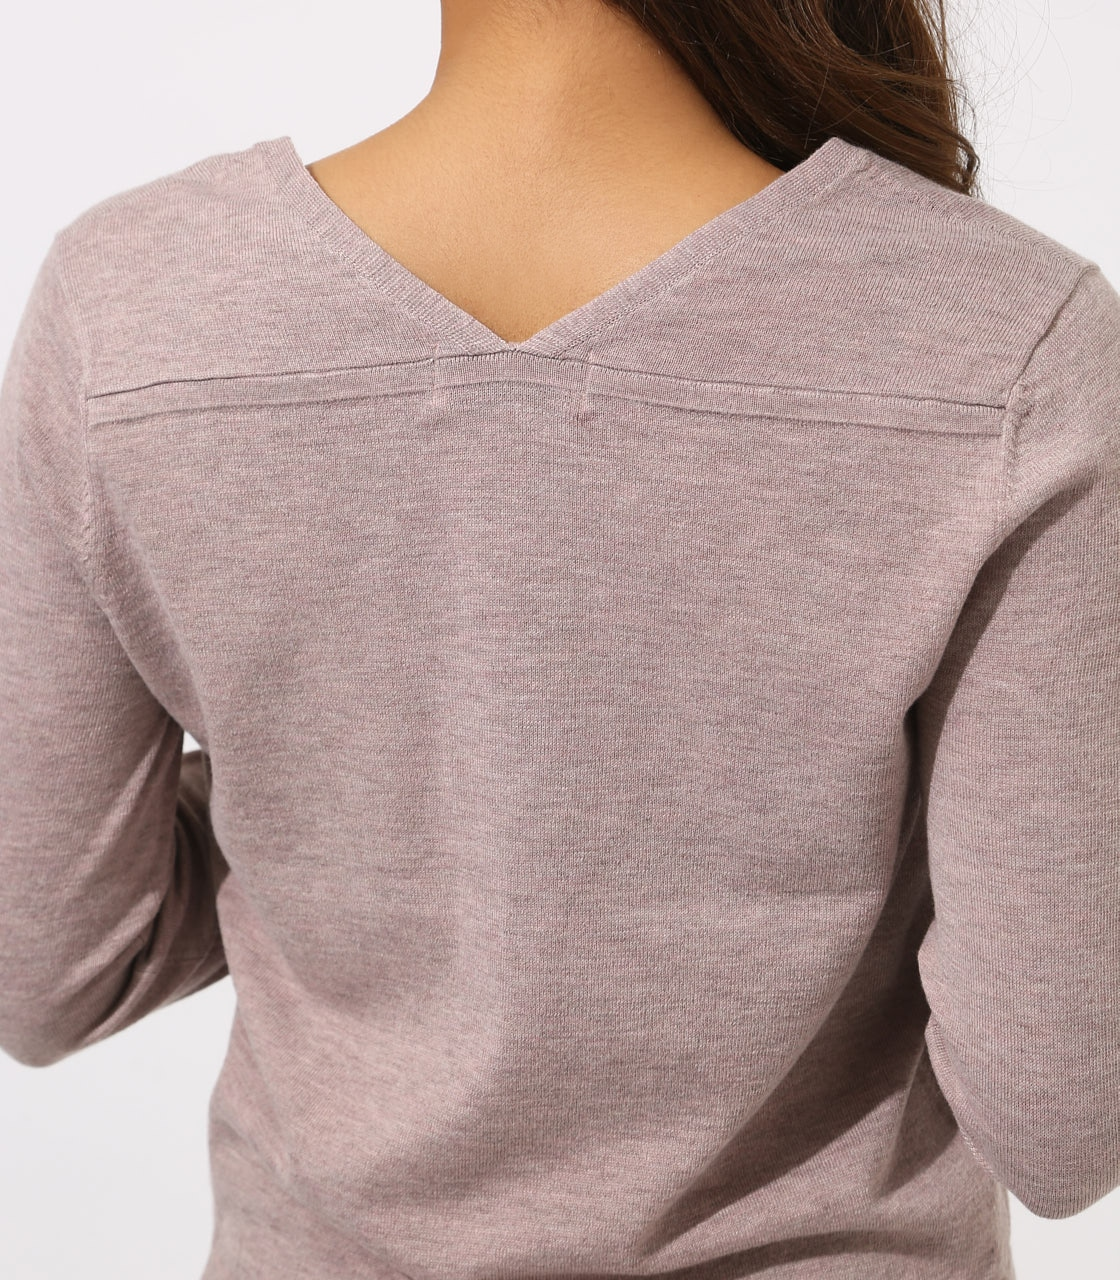 BASIC VNECK KNIT TOPS 詳細画像 BEG 9